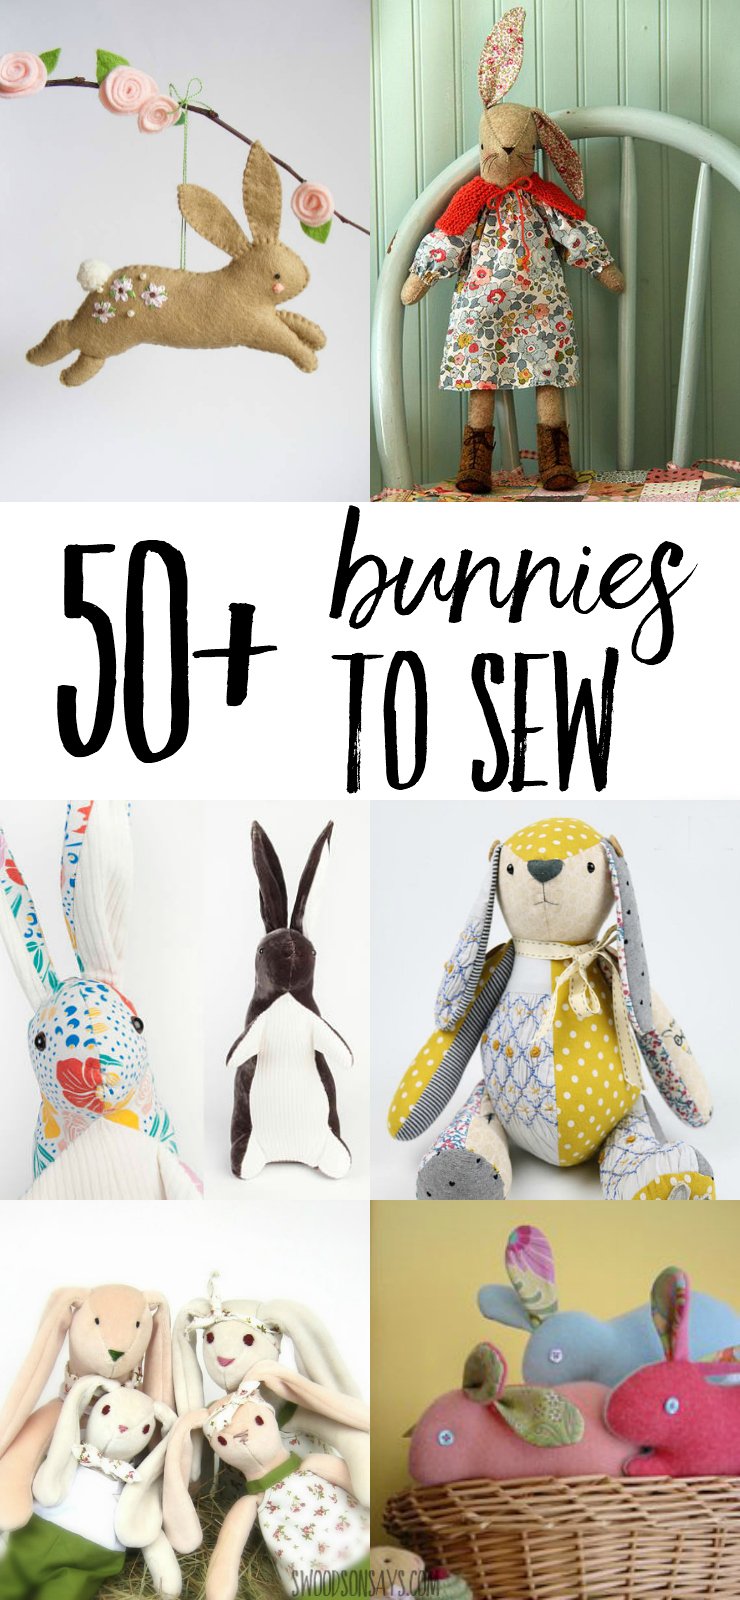 50 stuffed bunny sewing patterns swoodson says check out over 50 bunny sewing patterns to sew the sweetest stuffed animals perfect easter negle Gallery